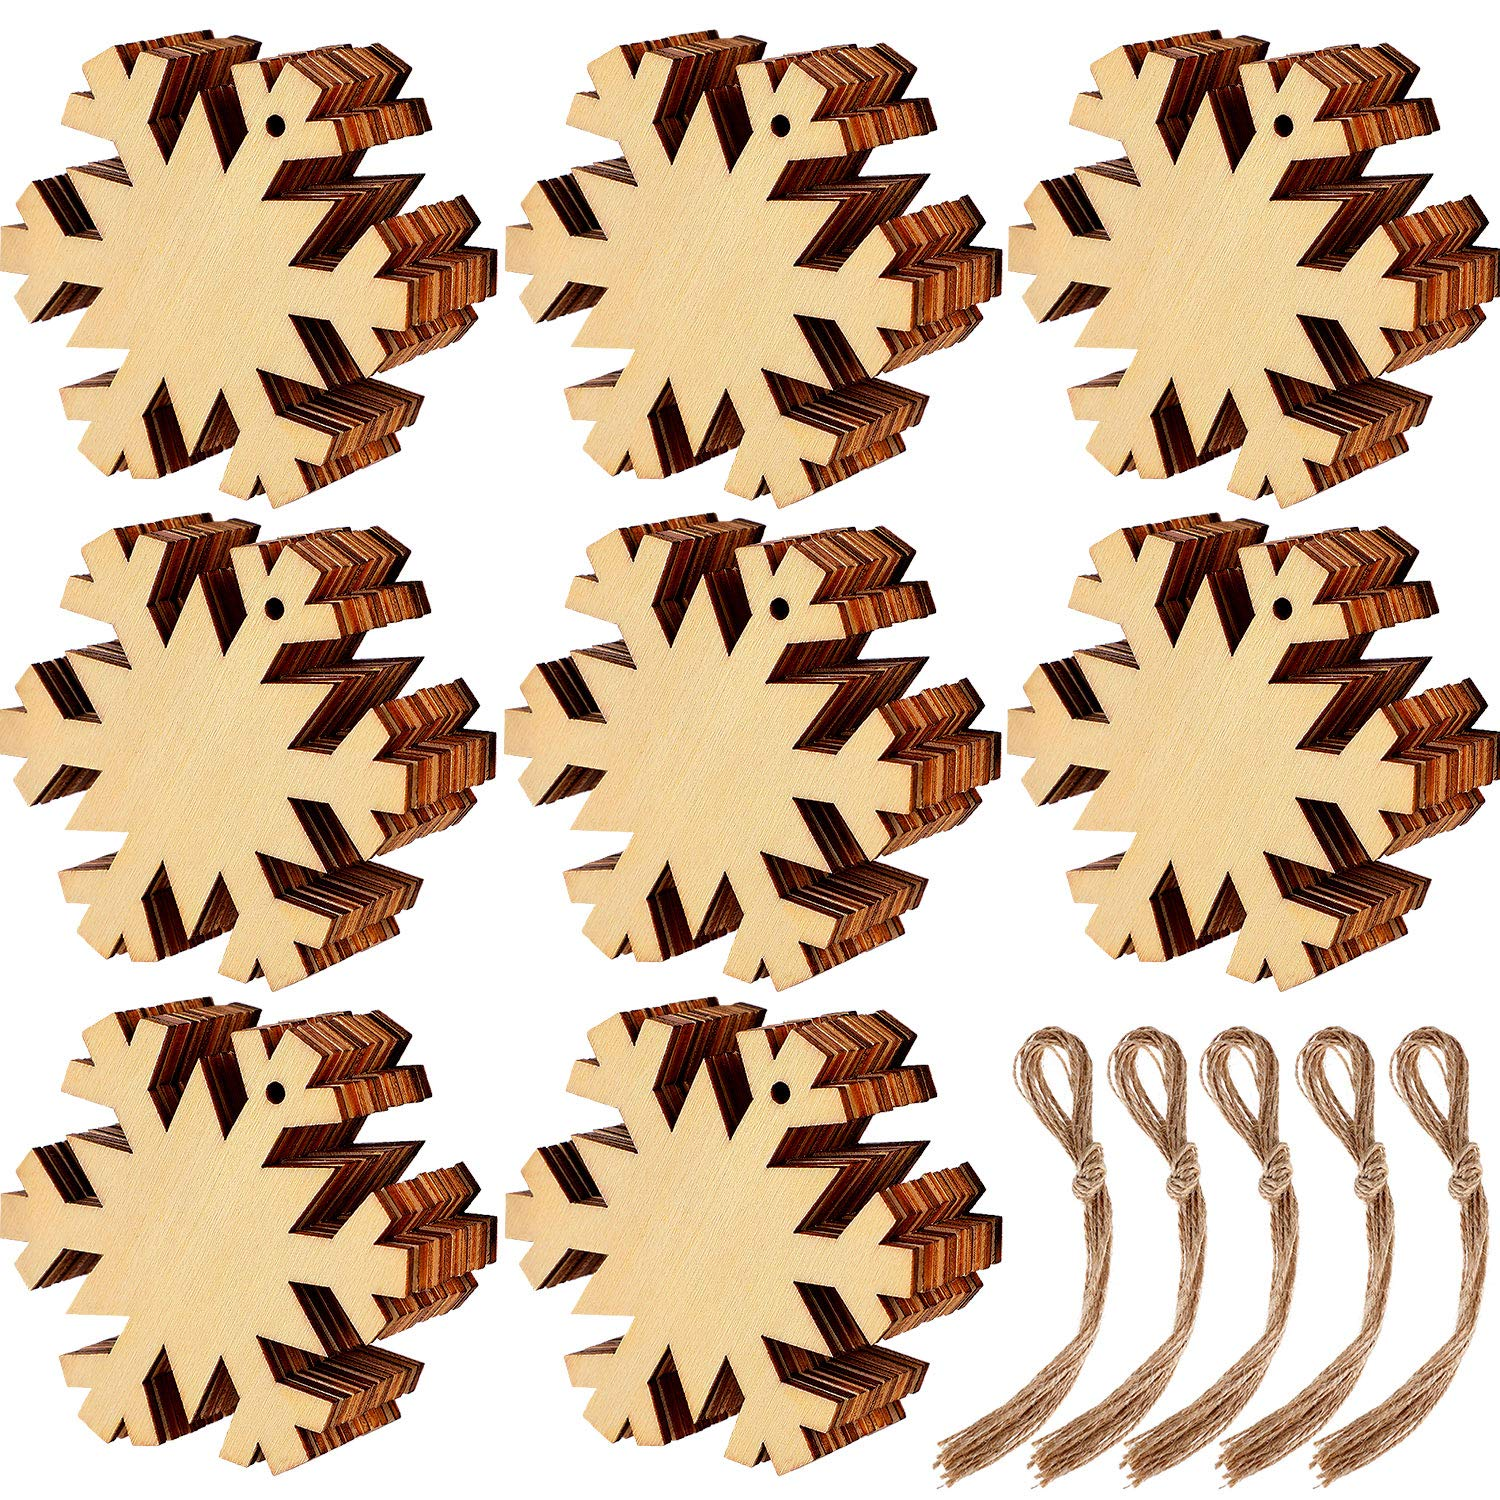 Blulu 60 Pieces Christmas Wooden Ornaments Round Wood Slices Wood Snowflake Angel Shape Slices with 60 Pieces Cords for New Year Christmas Tree Pendant Ornaments Style 2